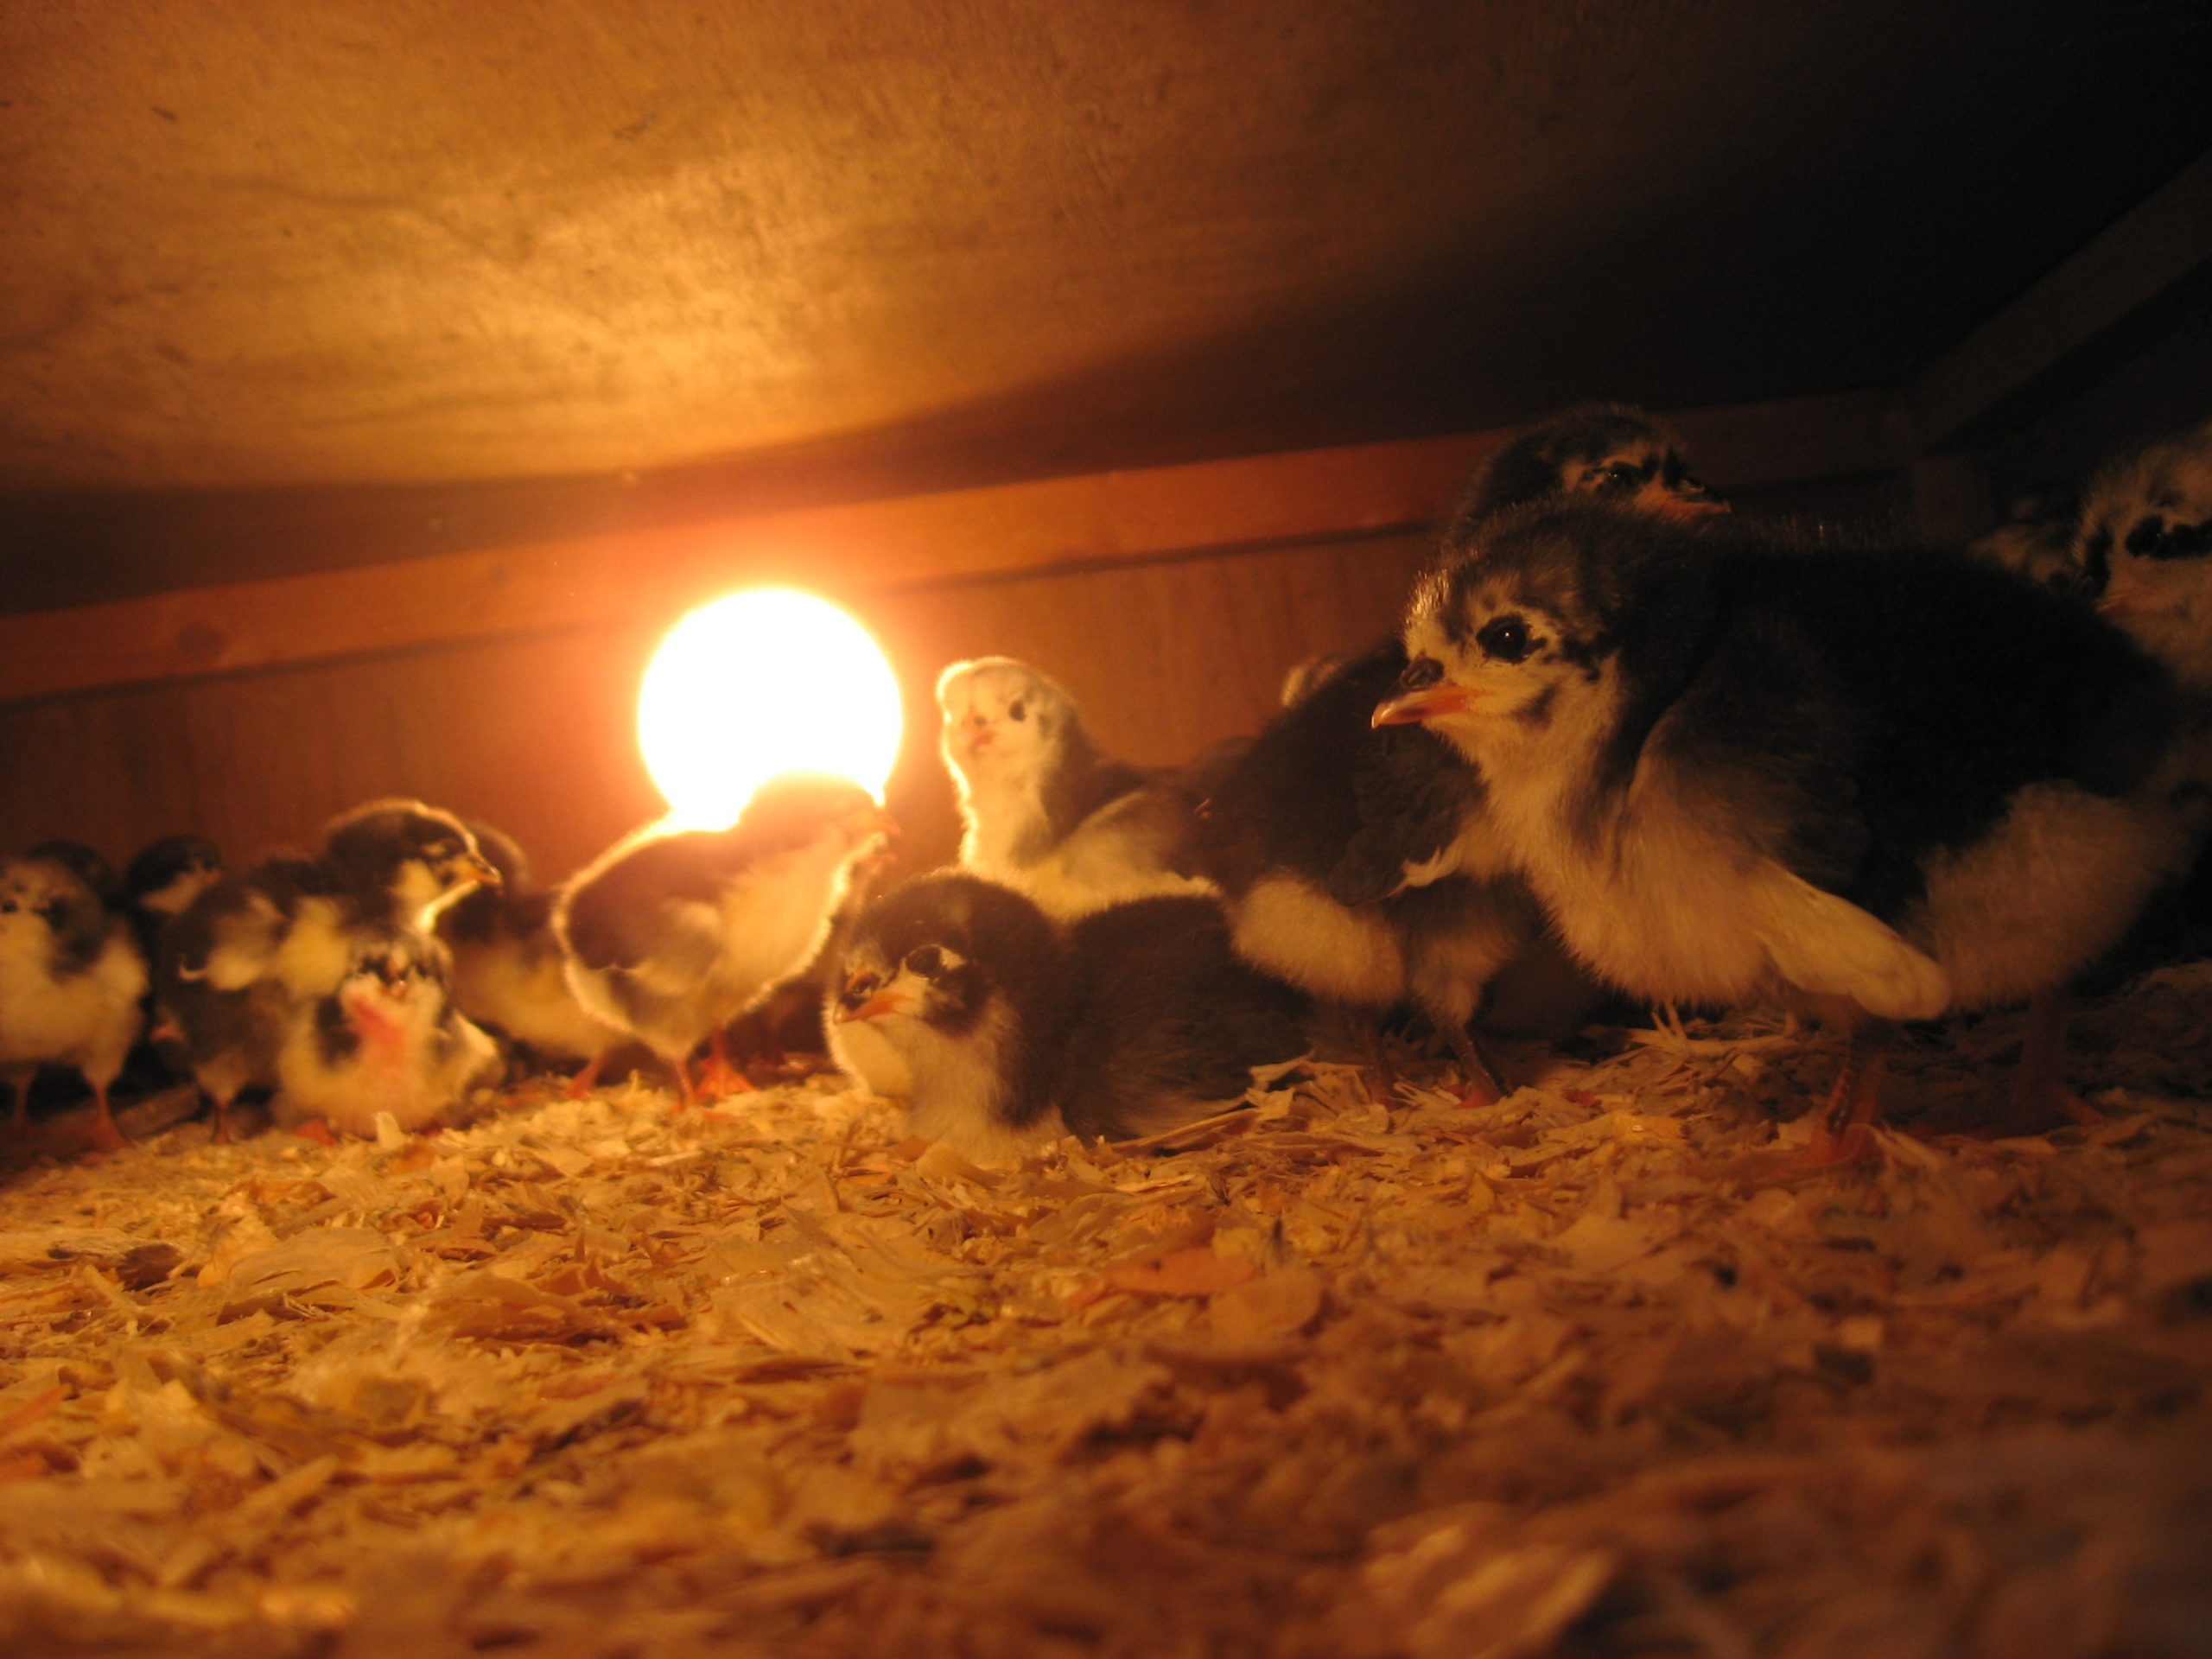 Chicks need the warmth from the lights because their feathers have not grown optimally.